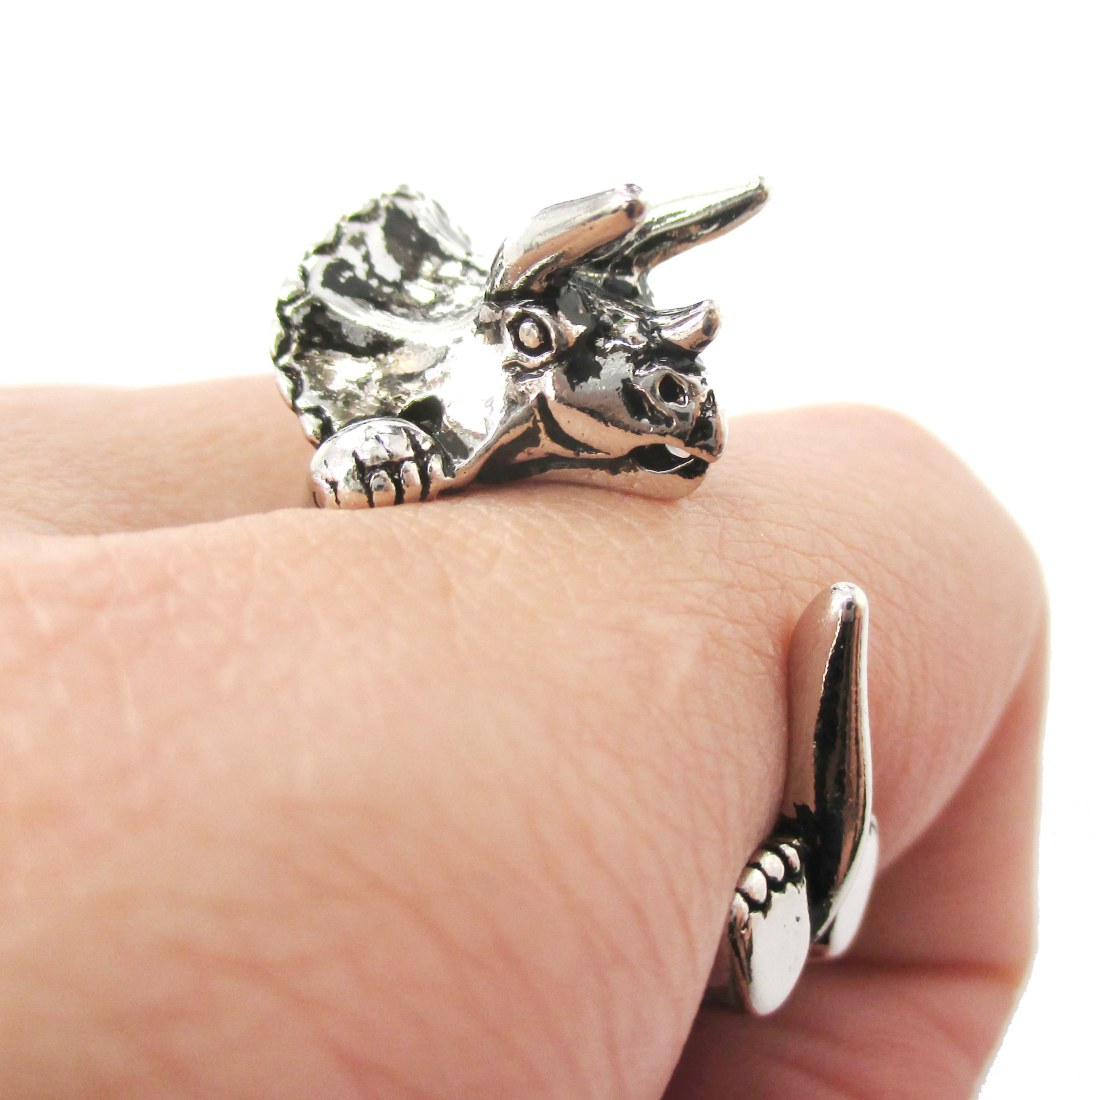 rings disposition silver bone jewelry hileman accesskeyid alloworigin and offers dinosaur